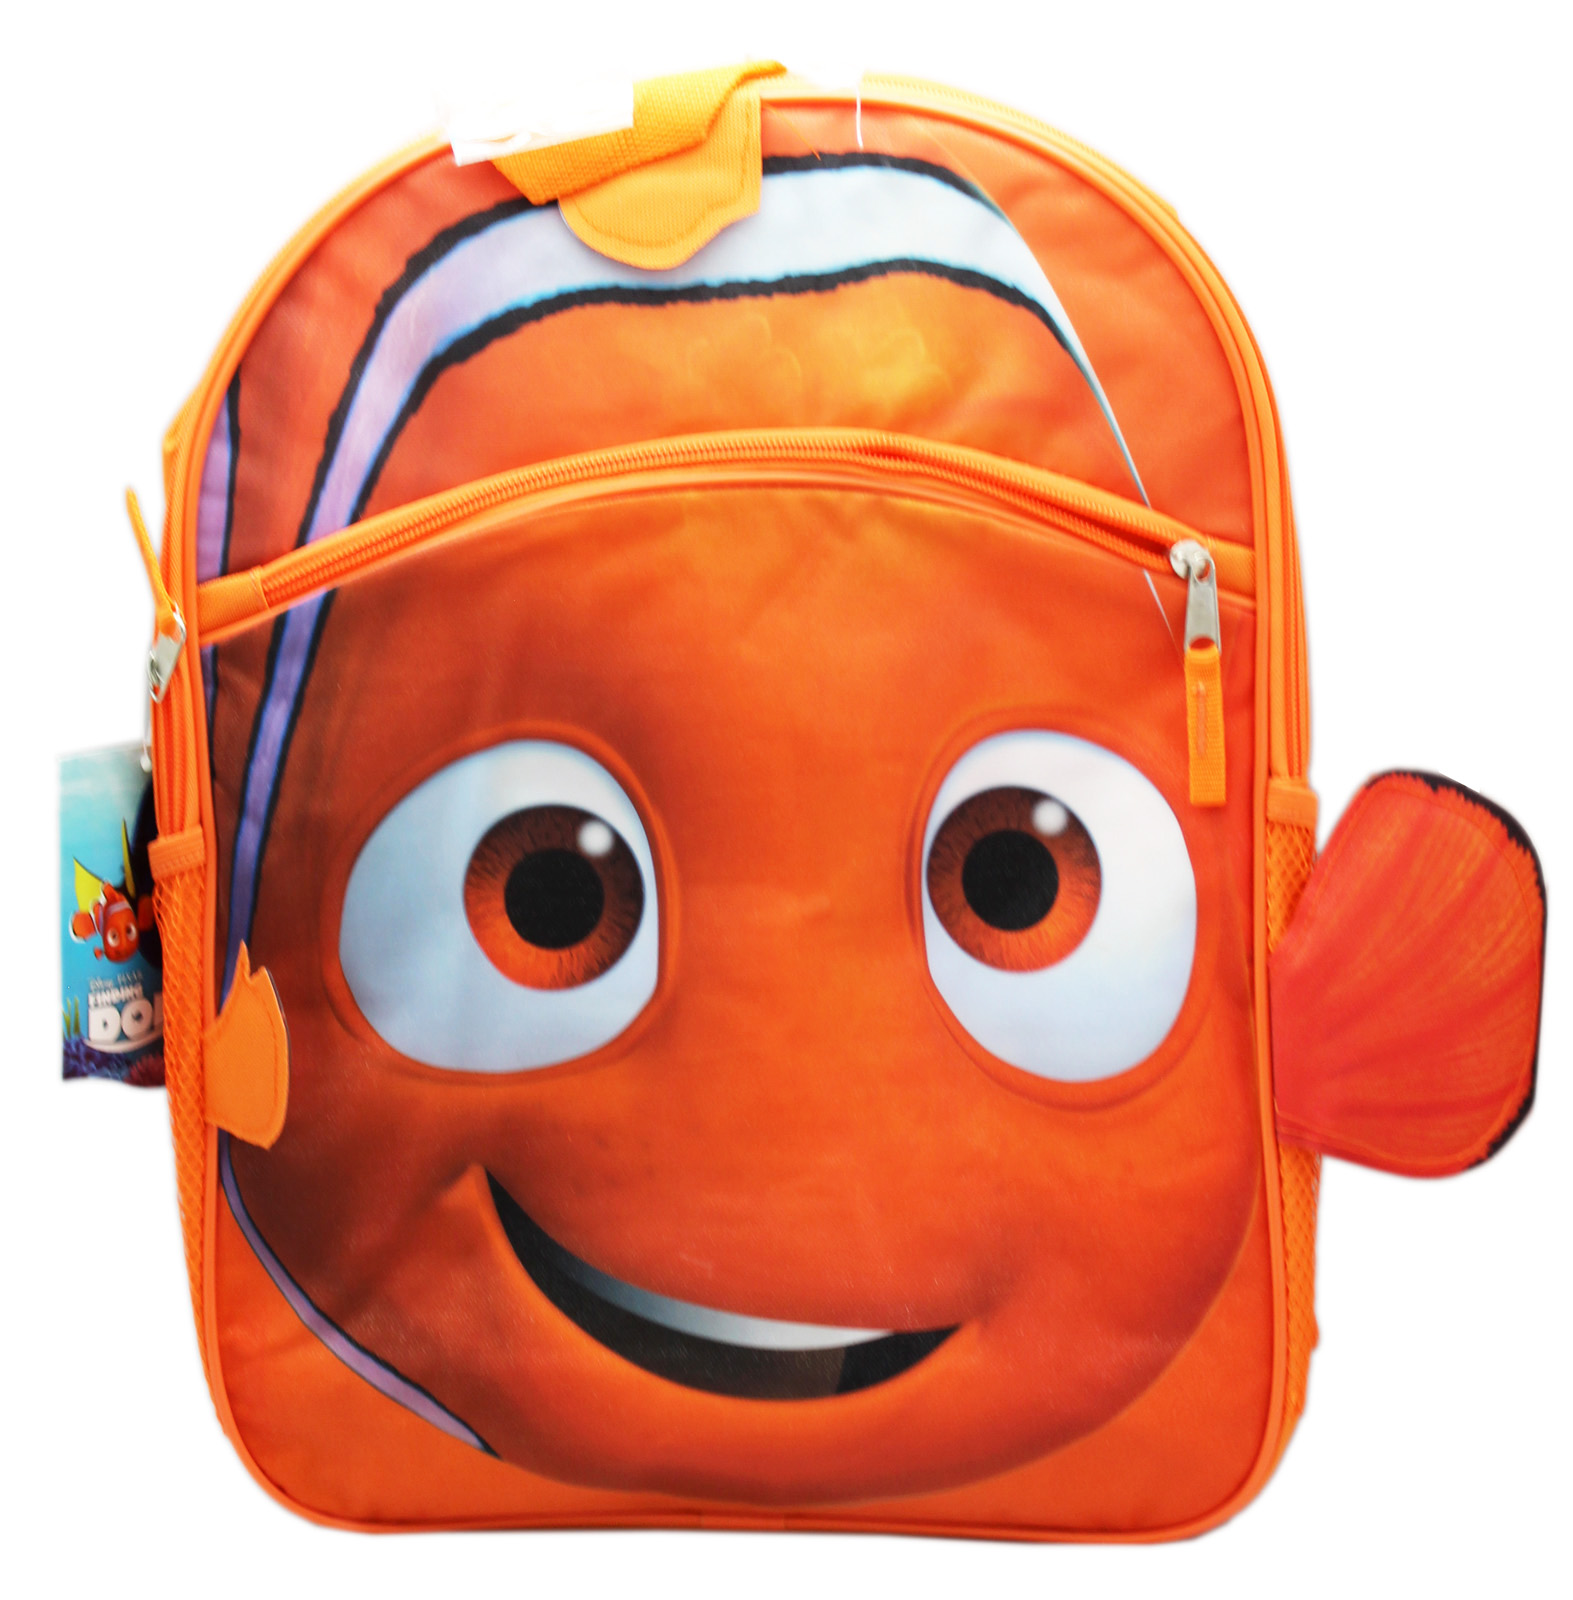 Disney Pixar's Finding Dory Nemo Face and Fins Full Size Kids Backpack (16in)